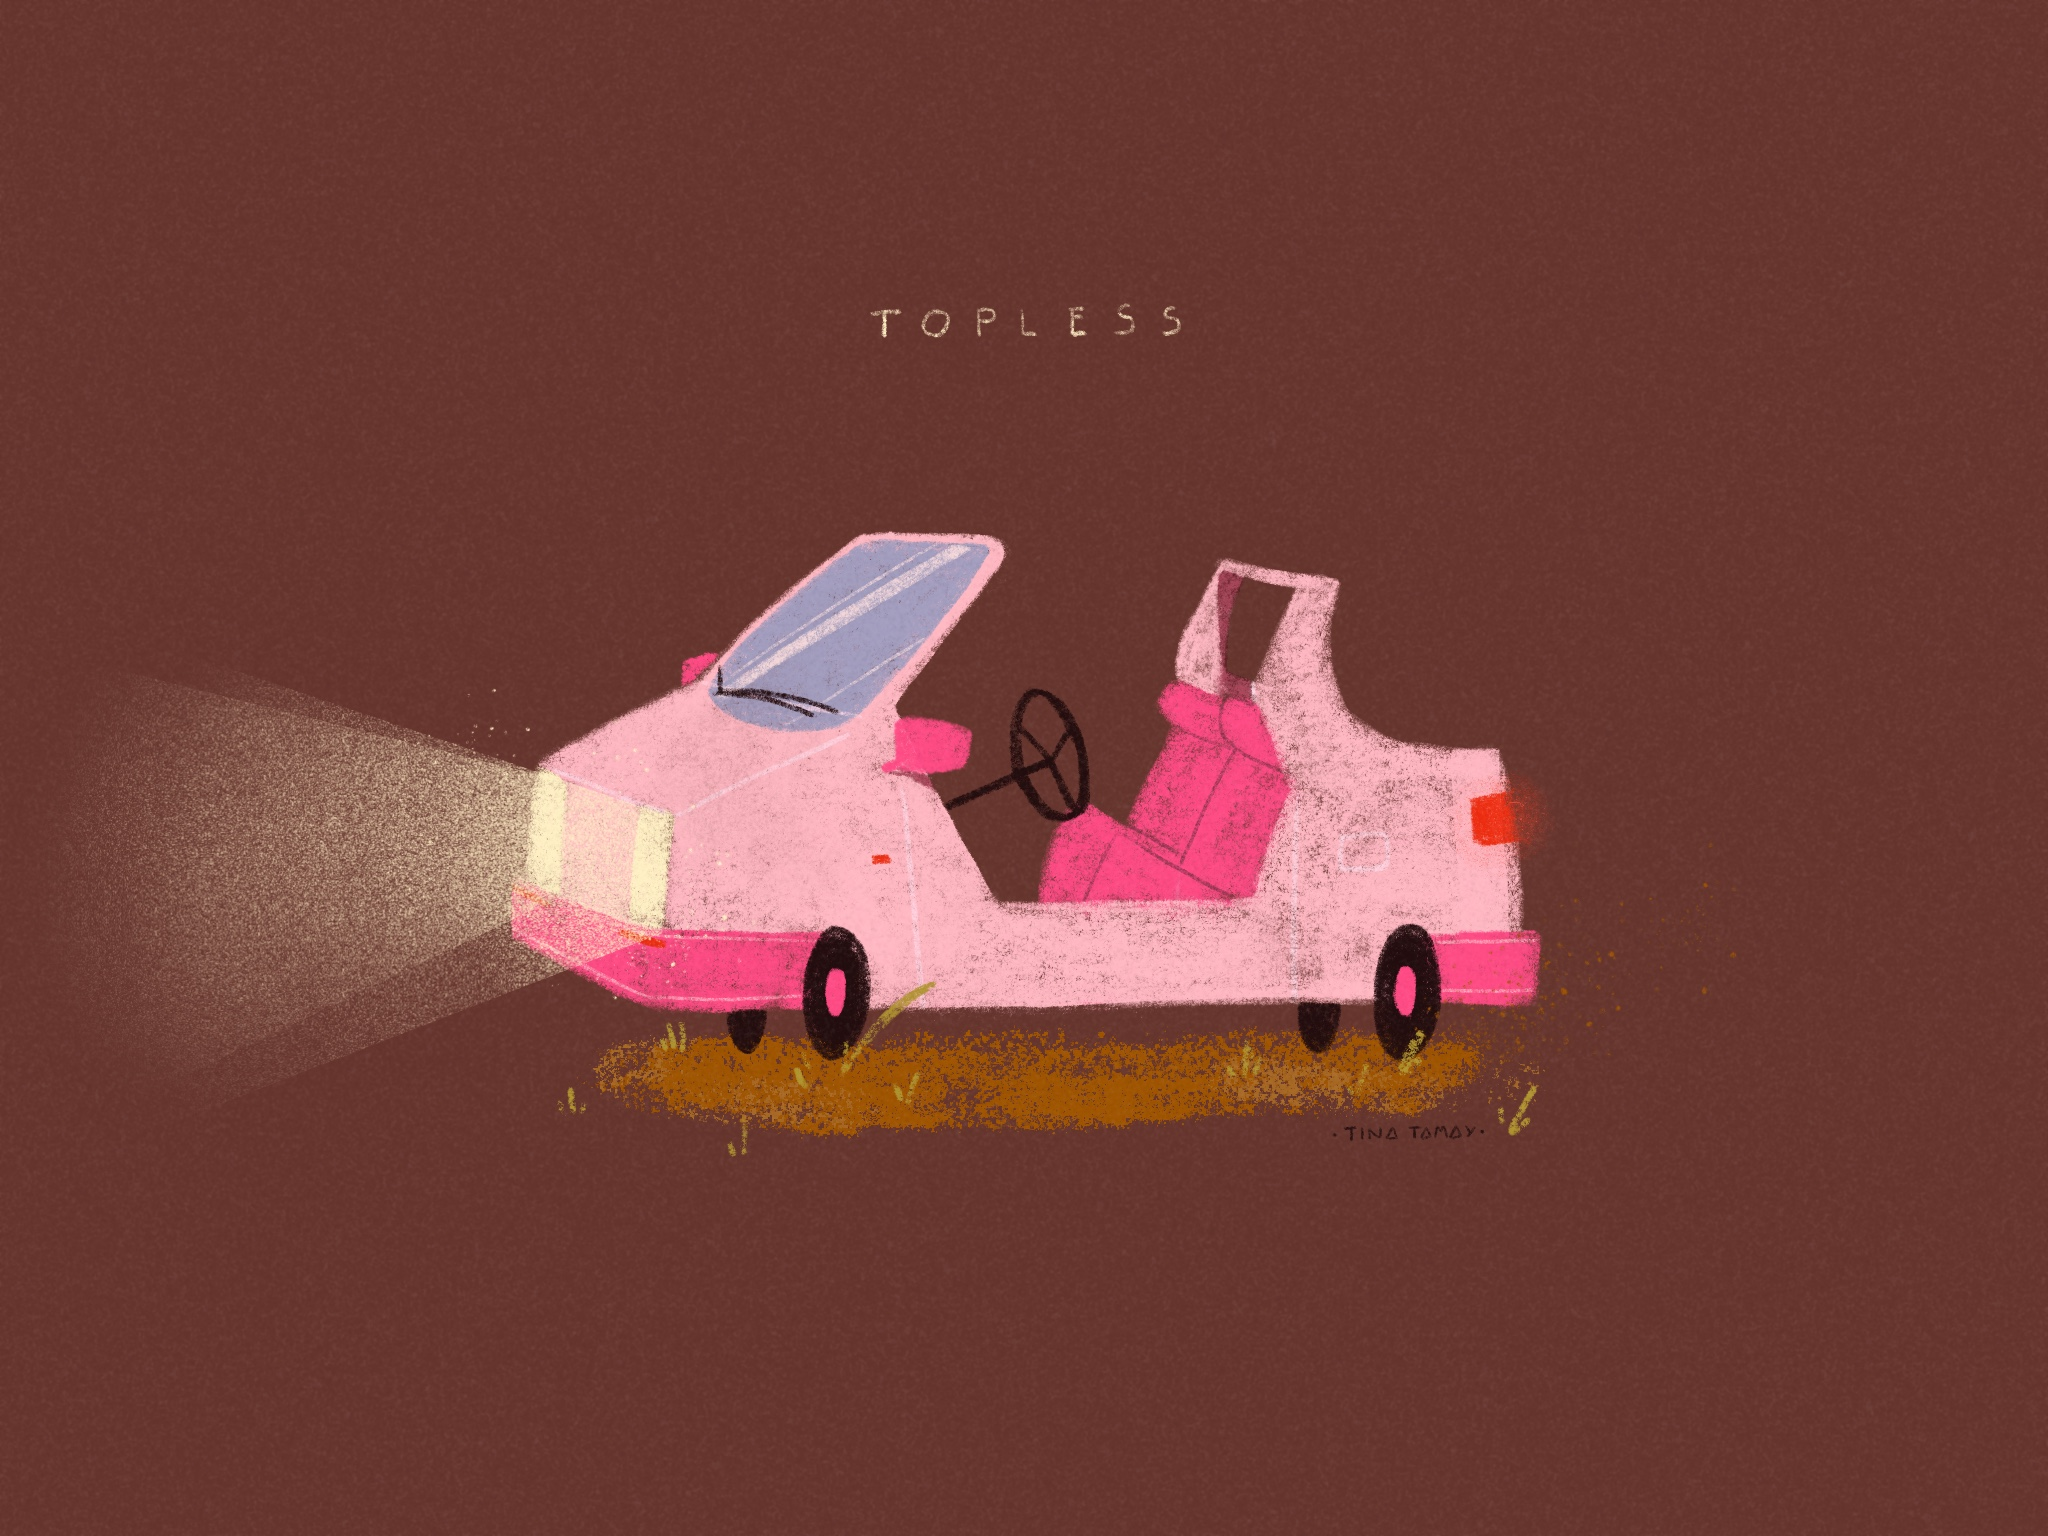 Topless car